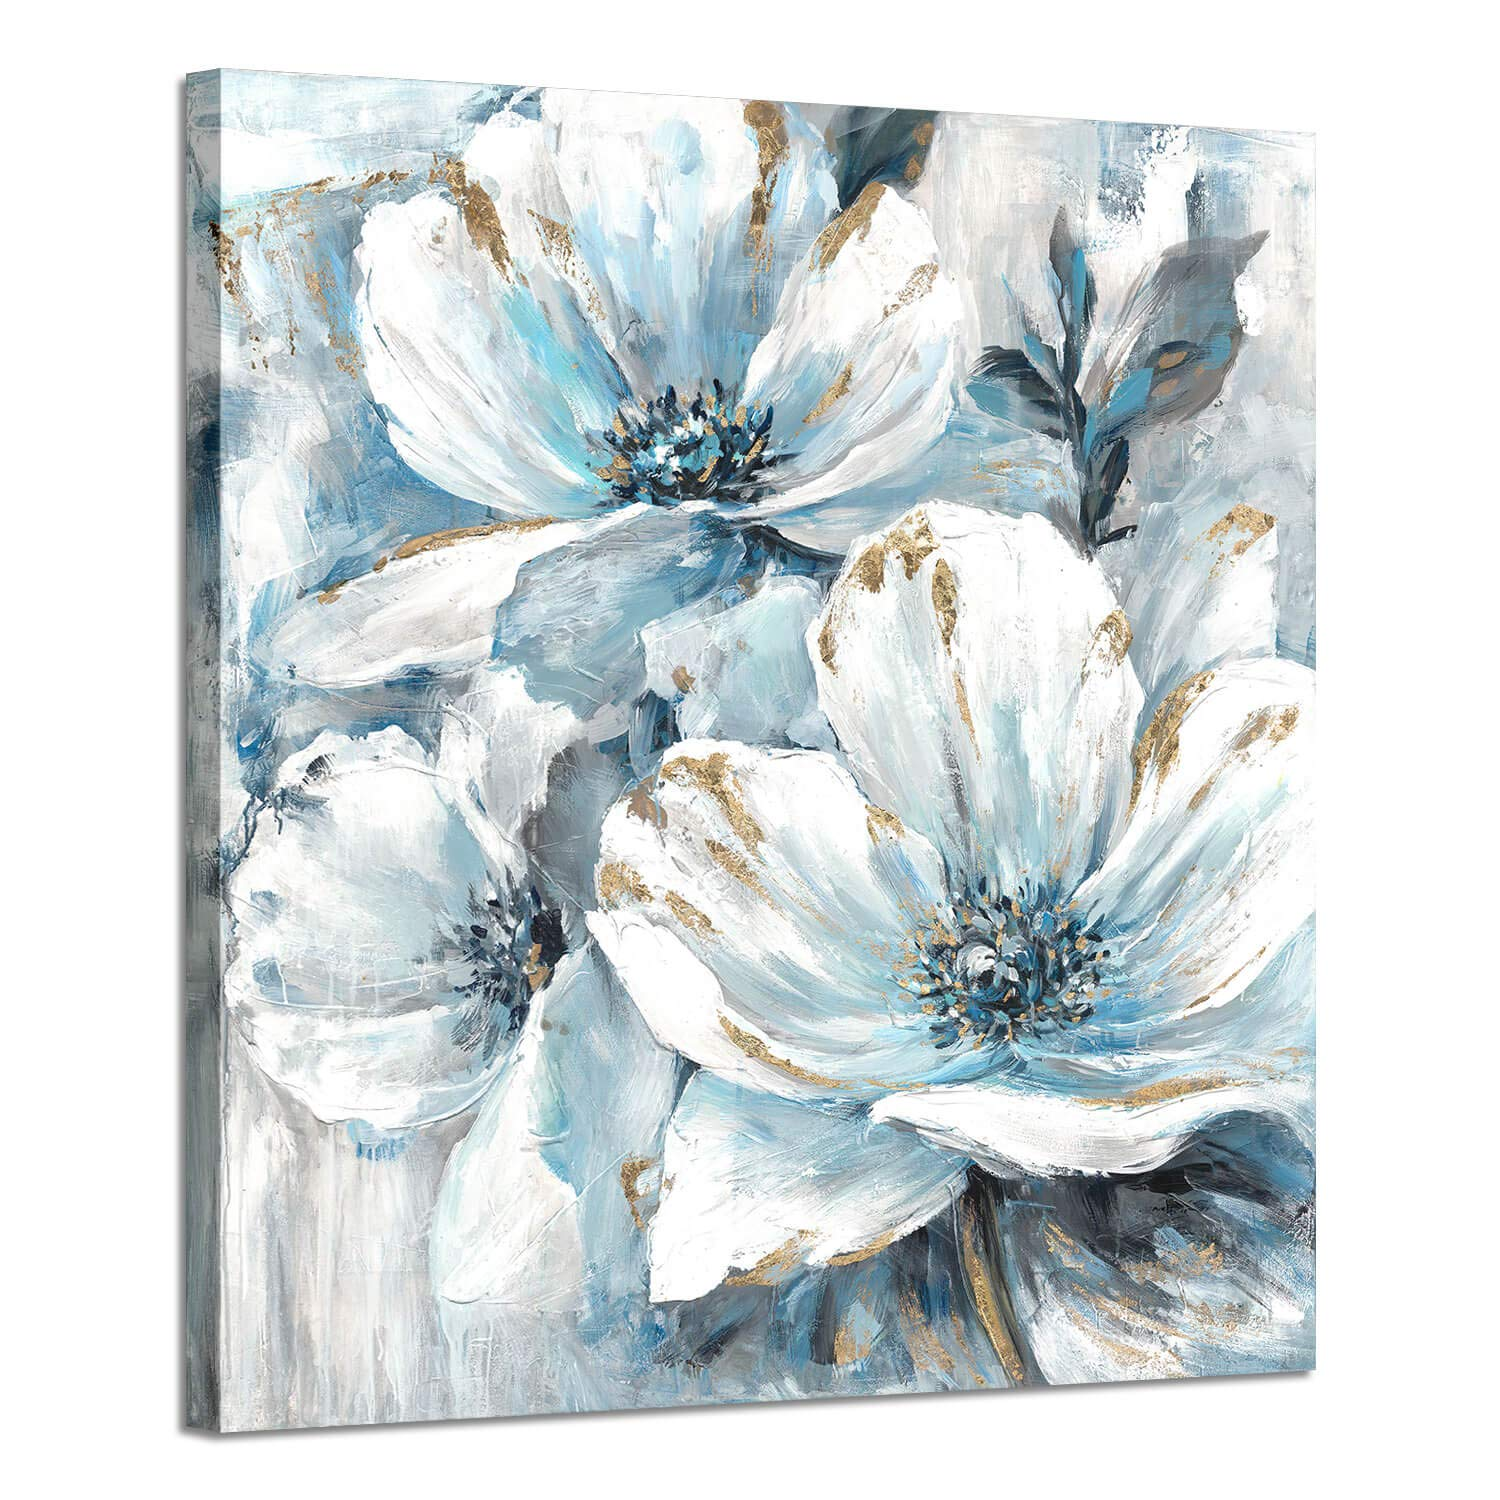 Flowers Artwork Oil Painting Pictures: White and Blue Lily Pad - Flower Splash with Burst of Spring Canvas Prints for Arts Decoration